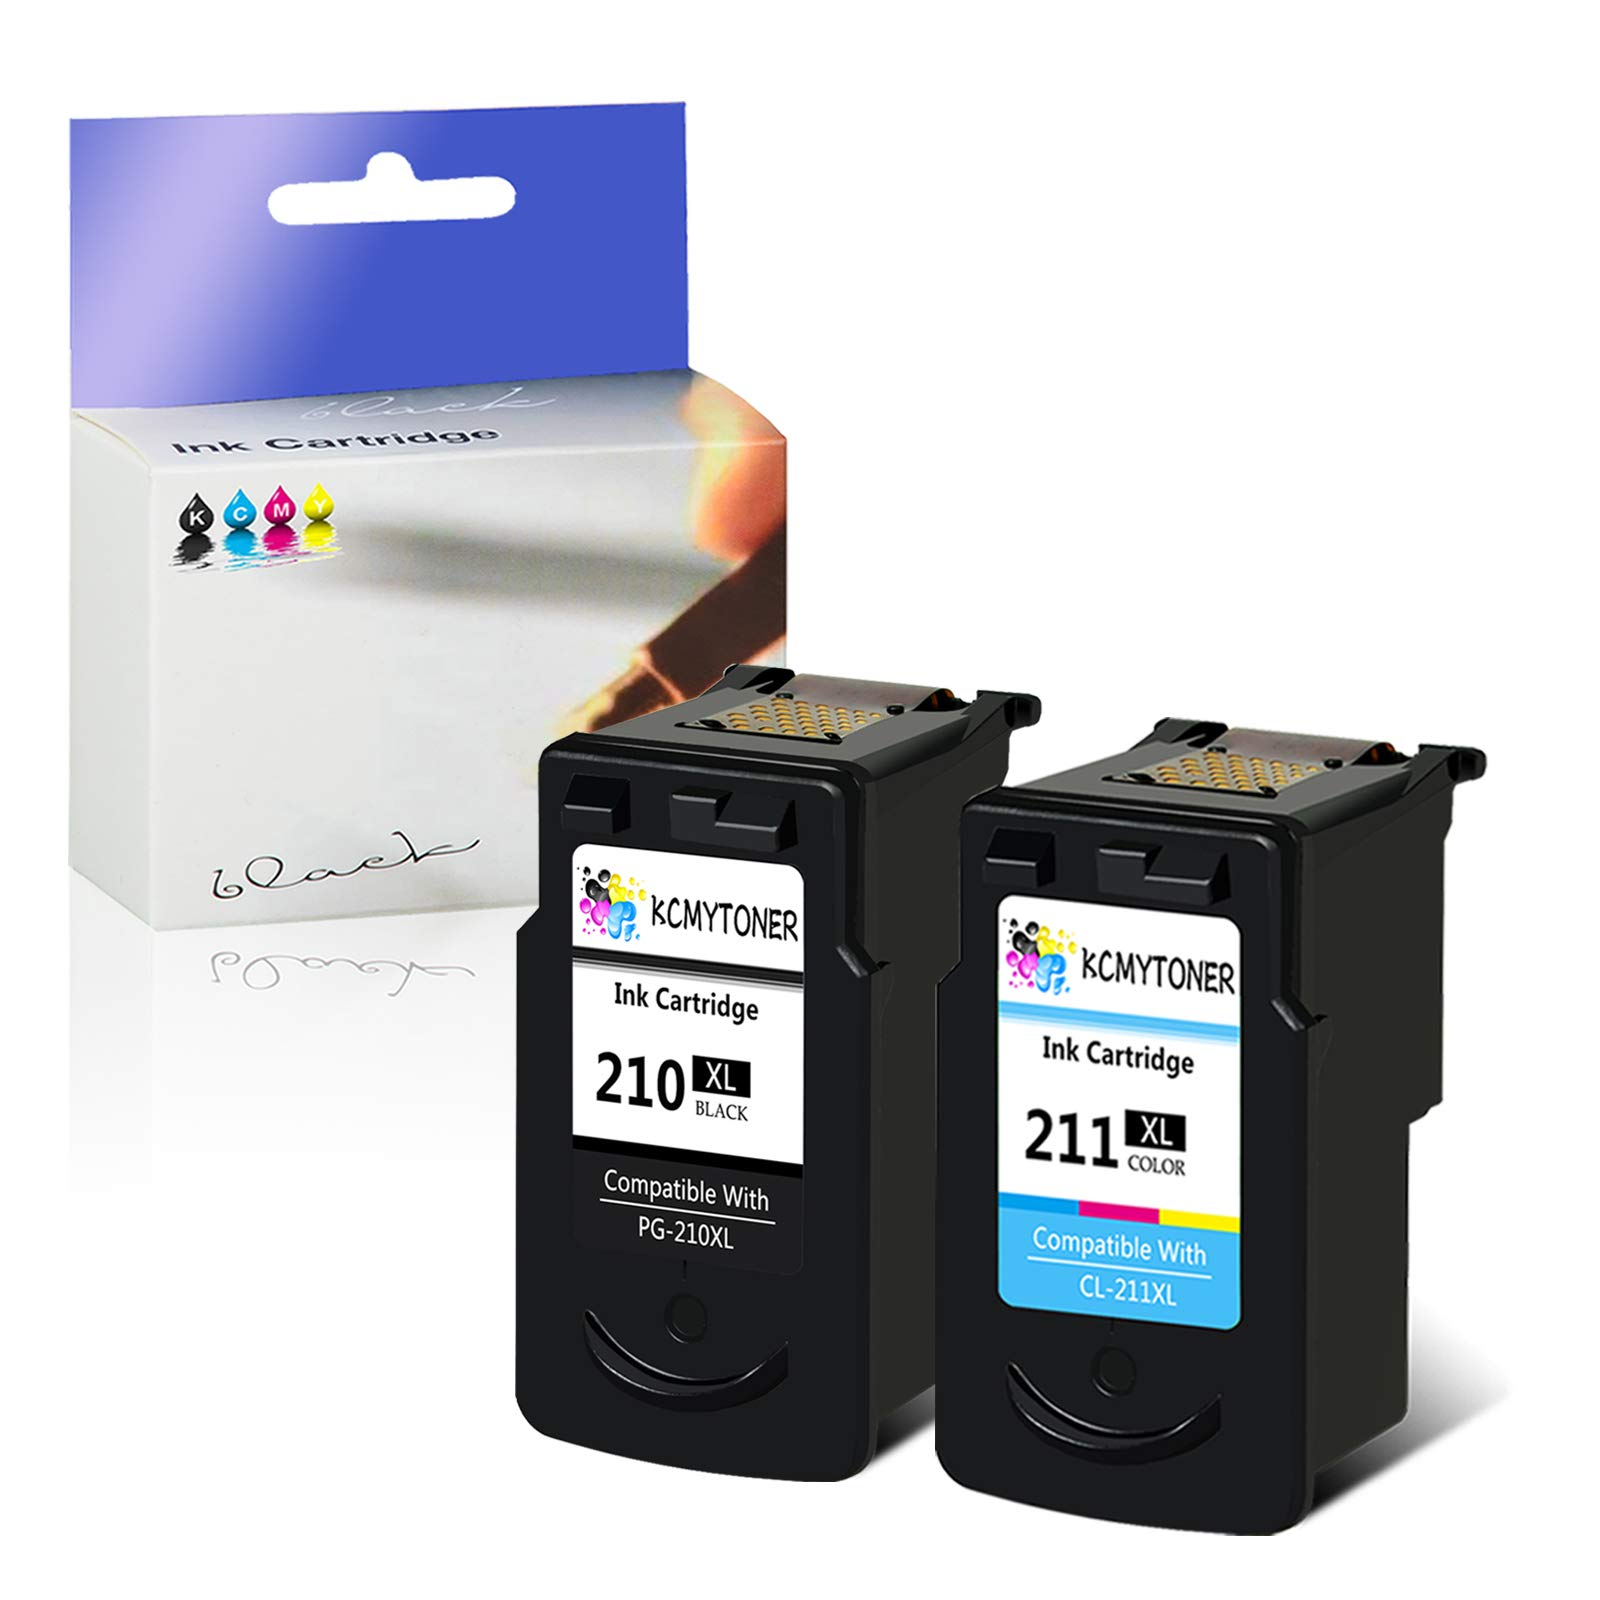 KCYMTONER Re-Manufactured Ink Cartridge Compatible for Canon PG-210XL 210 XL CL-211XL 211 XL IXMA IP2702 MP495 MP490 MP250 MP260 MP280 MP480 MX340 MX410 Printers (1 Black 1 Tri-Color,2 Pack)